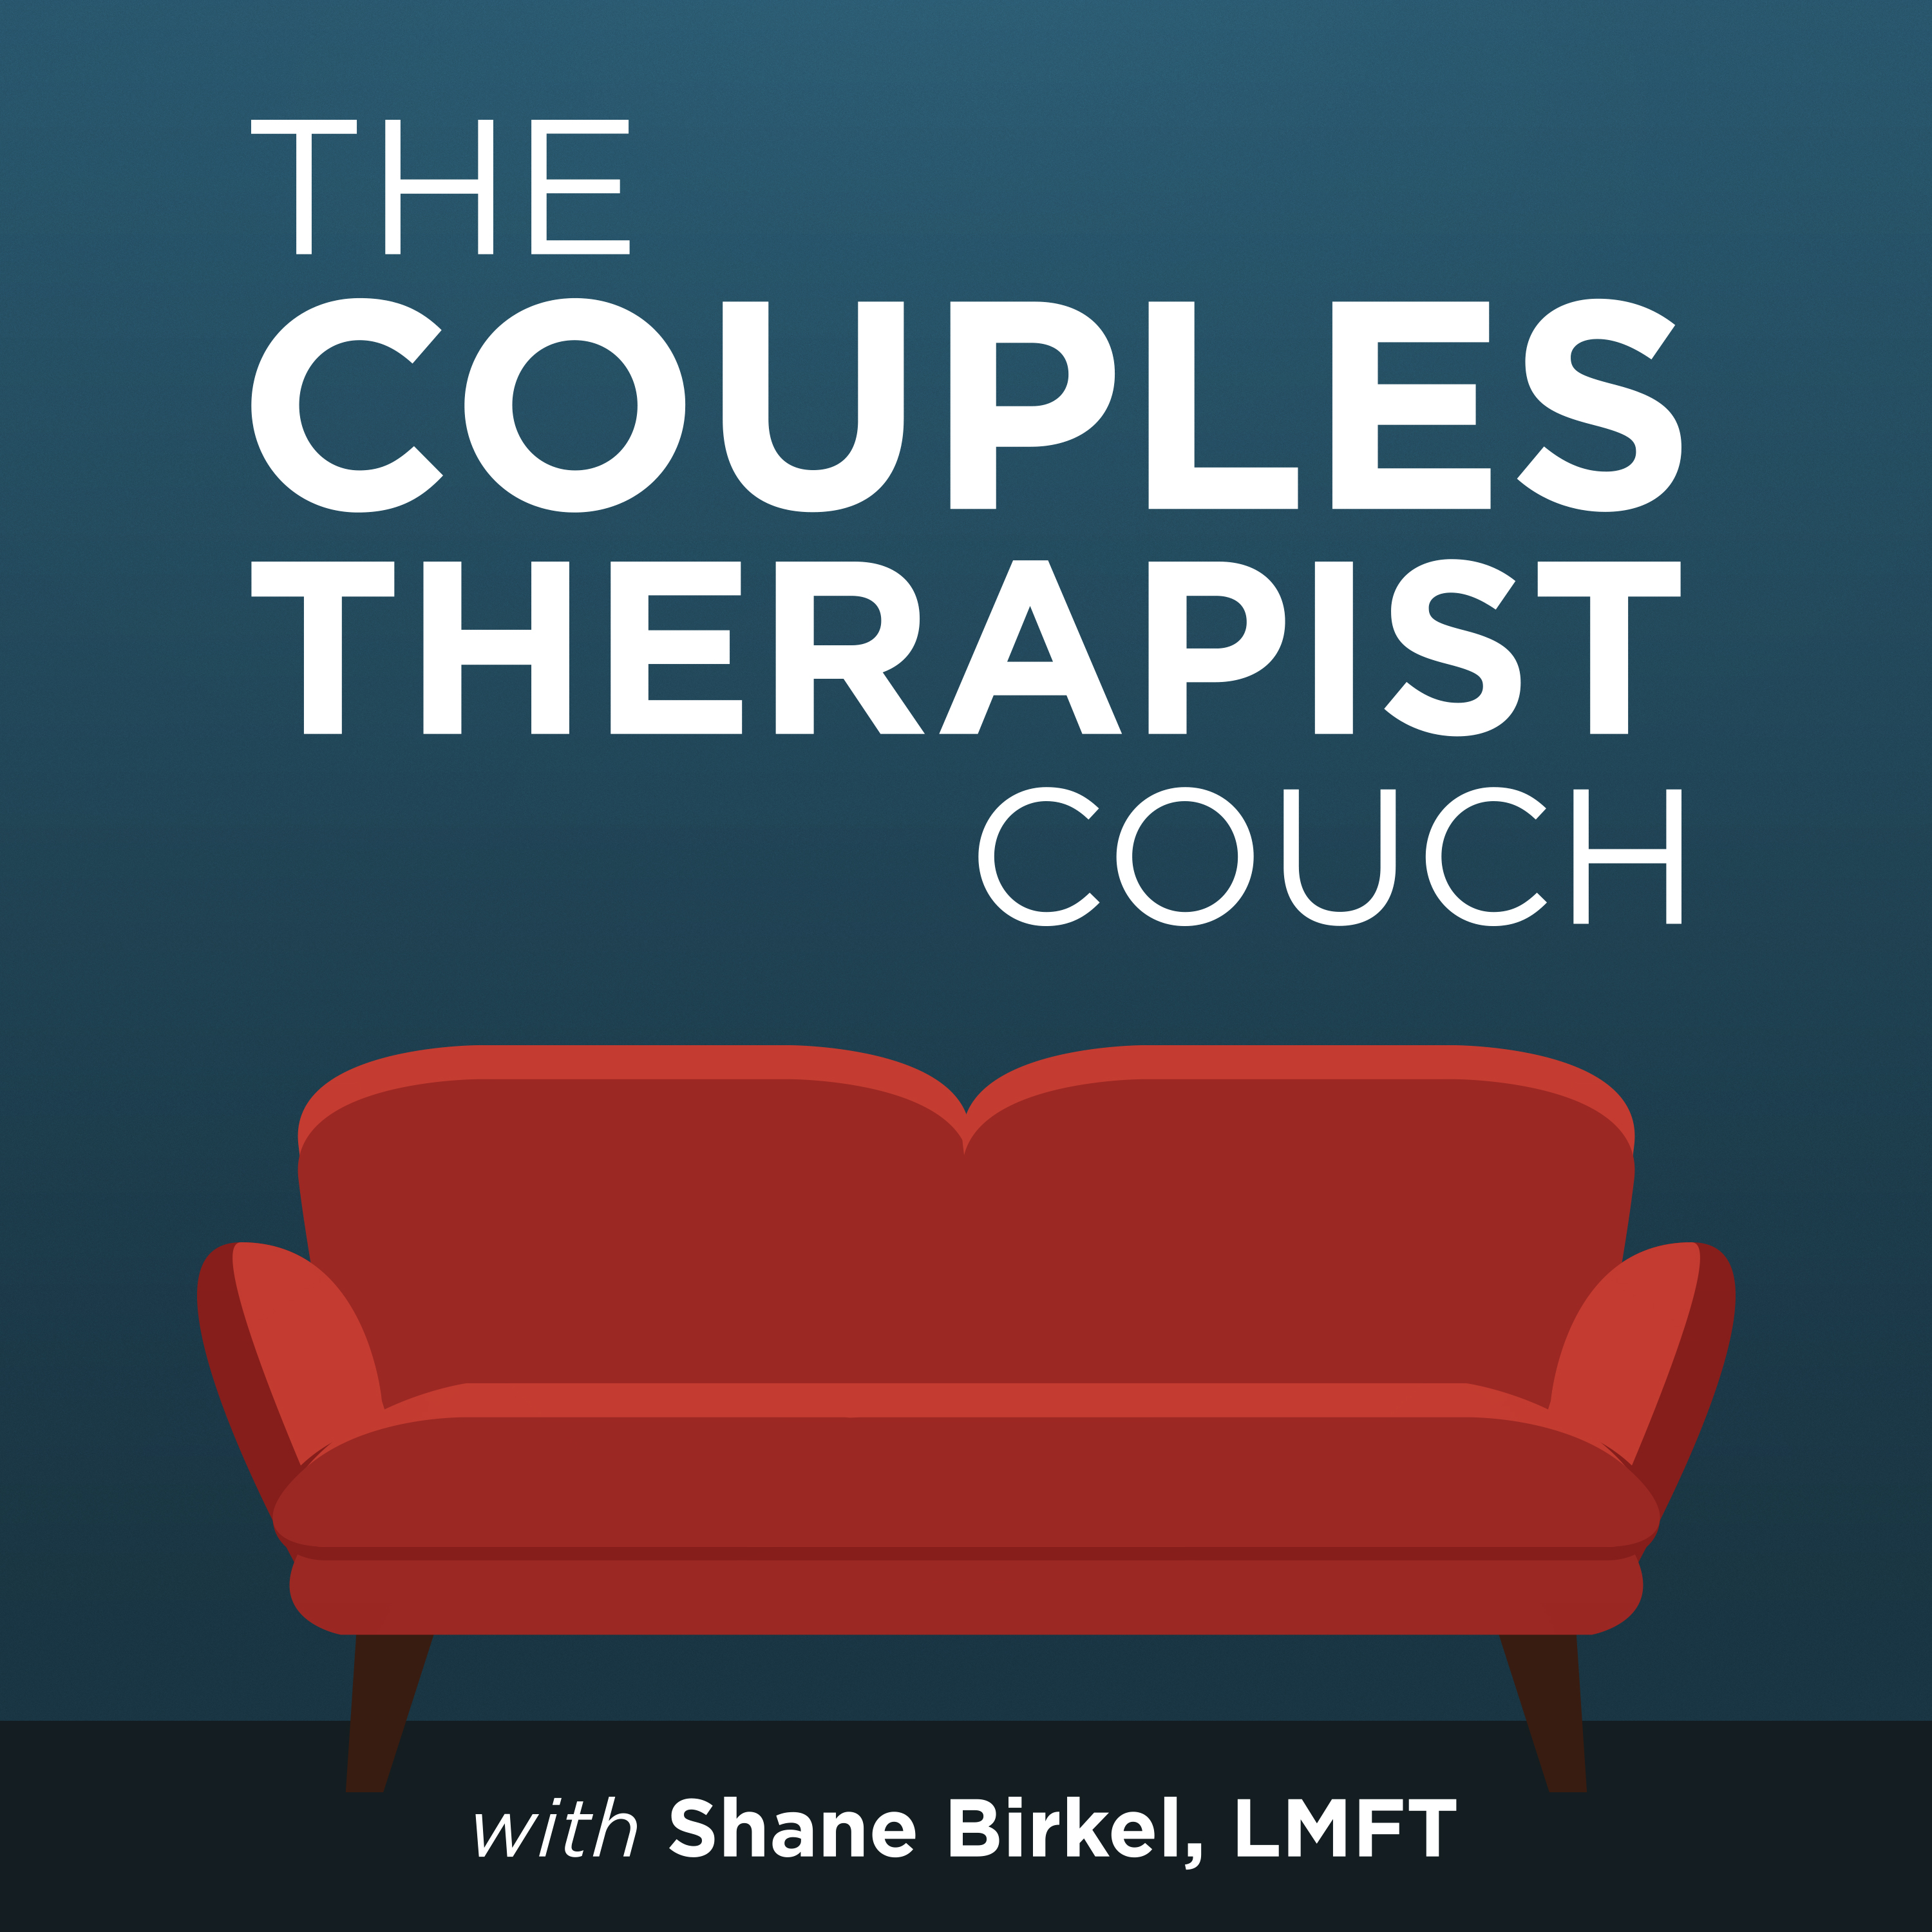 The Couples Therapist Couch show art